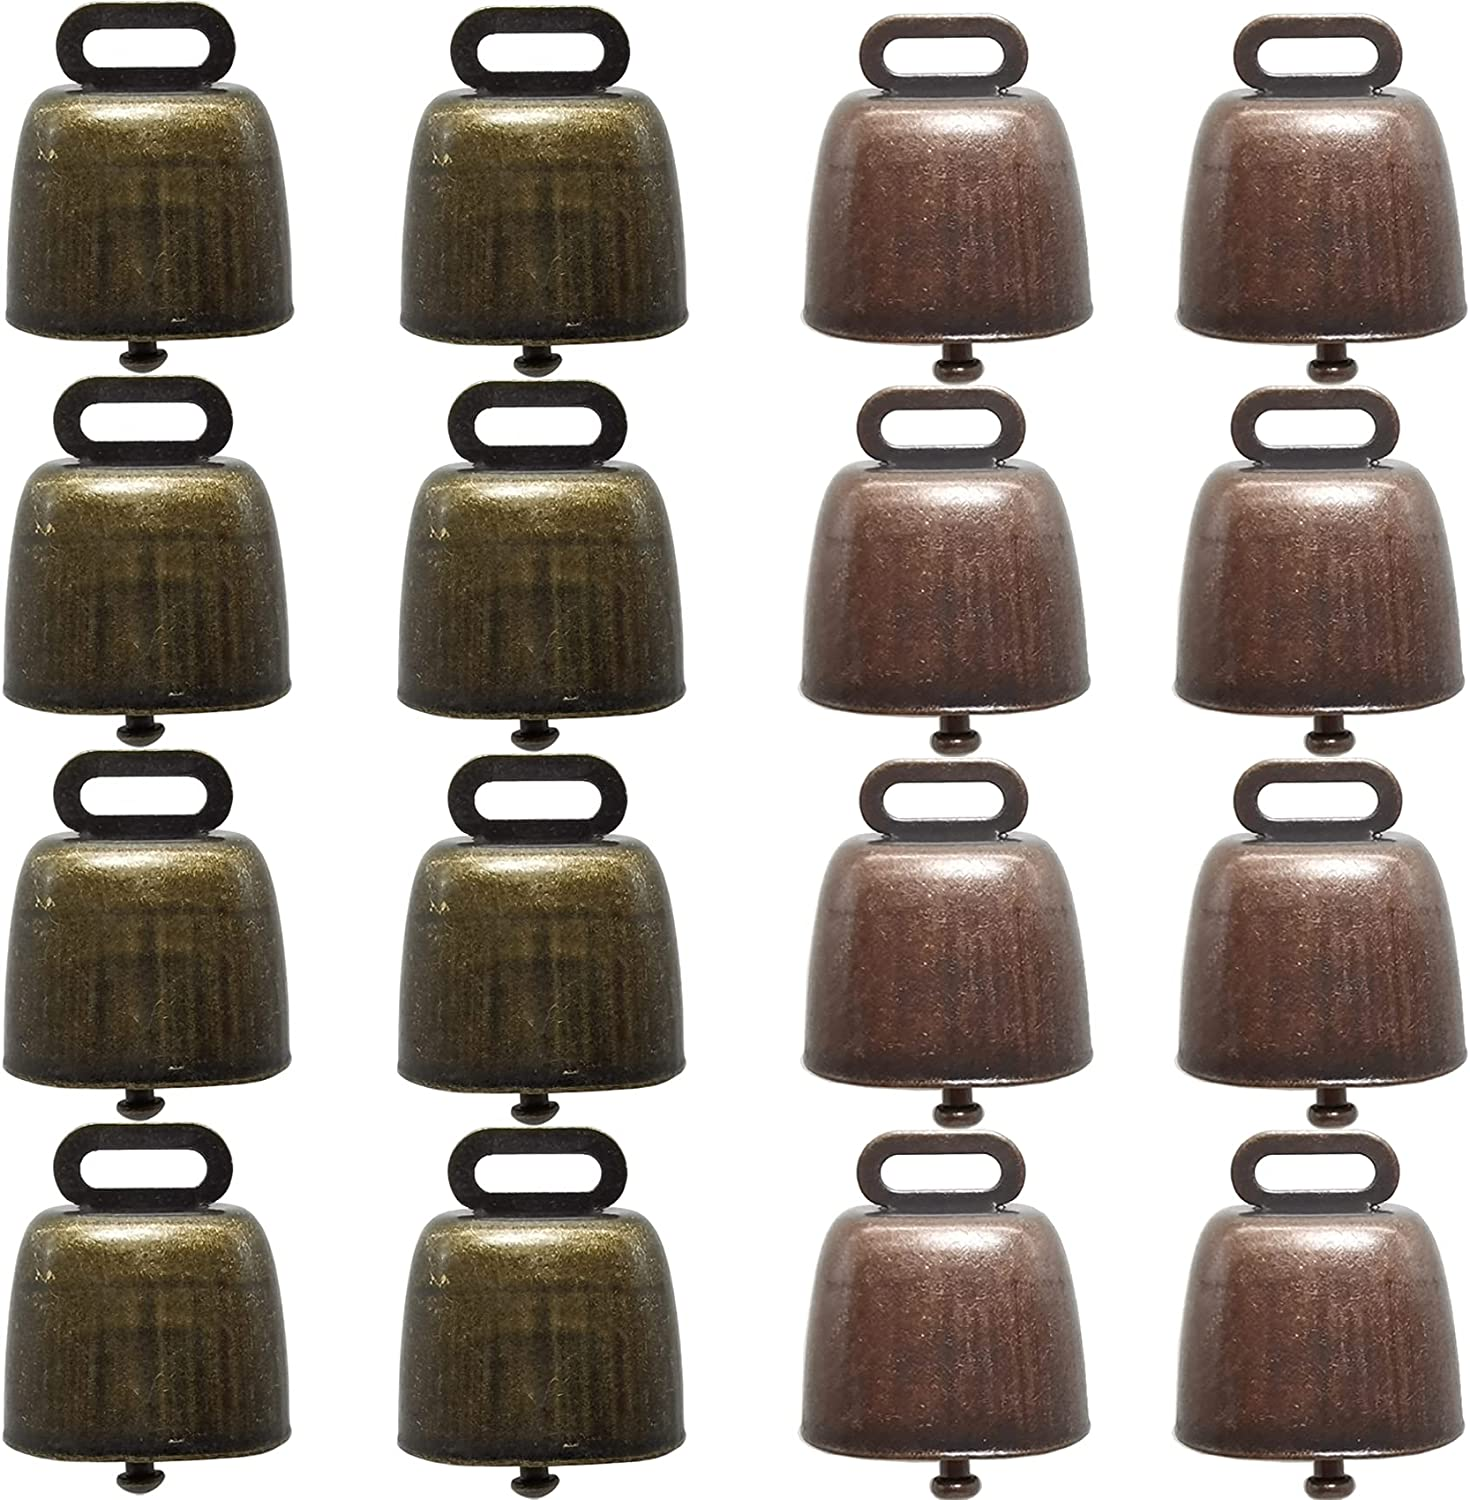 YOOHUA 16PCS Cow Horse Industry No. 1 Sheep Grazing Bells Be online shopping Copper Brass Small